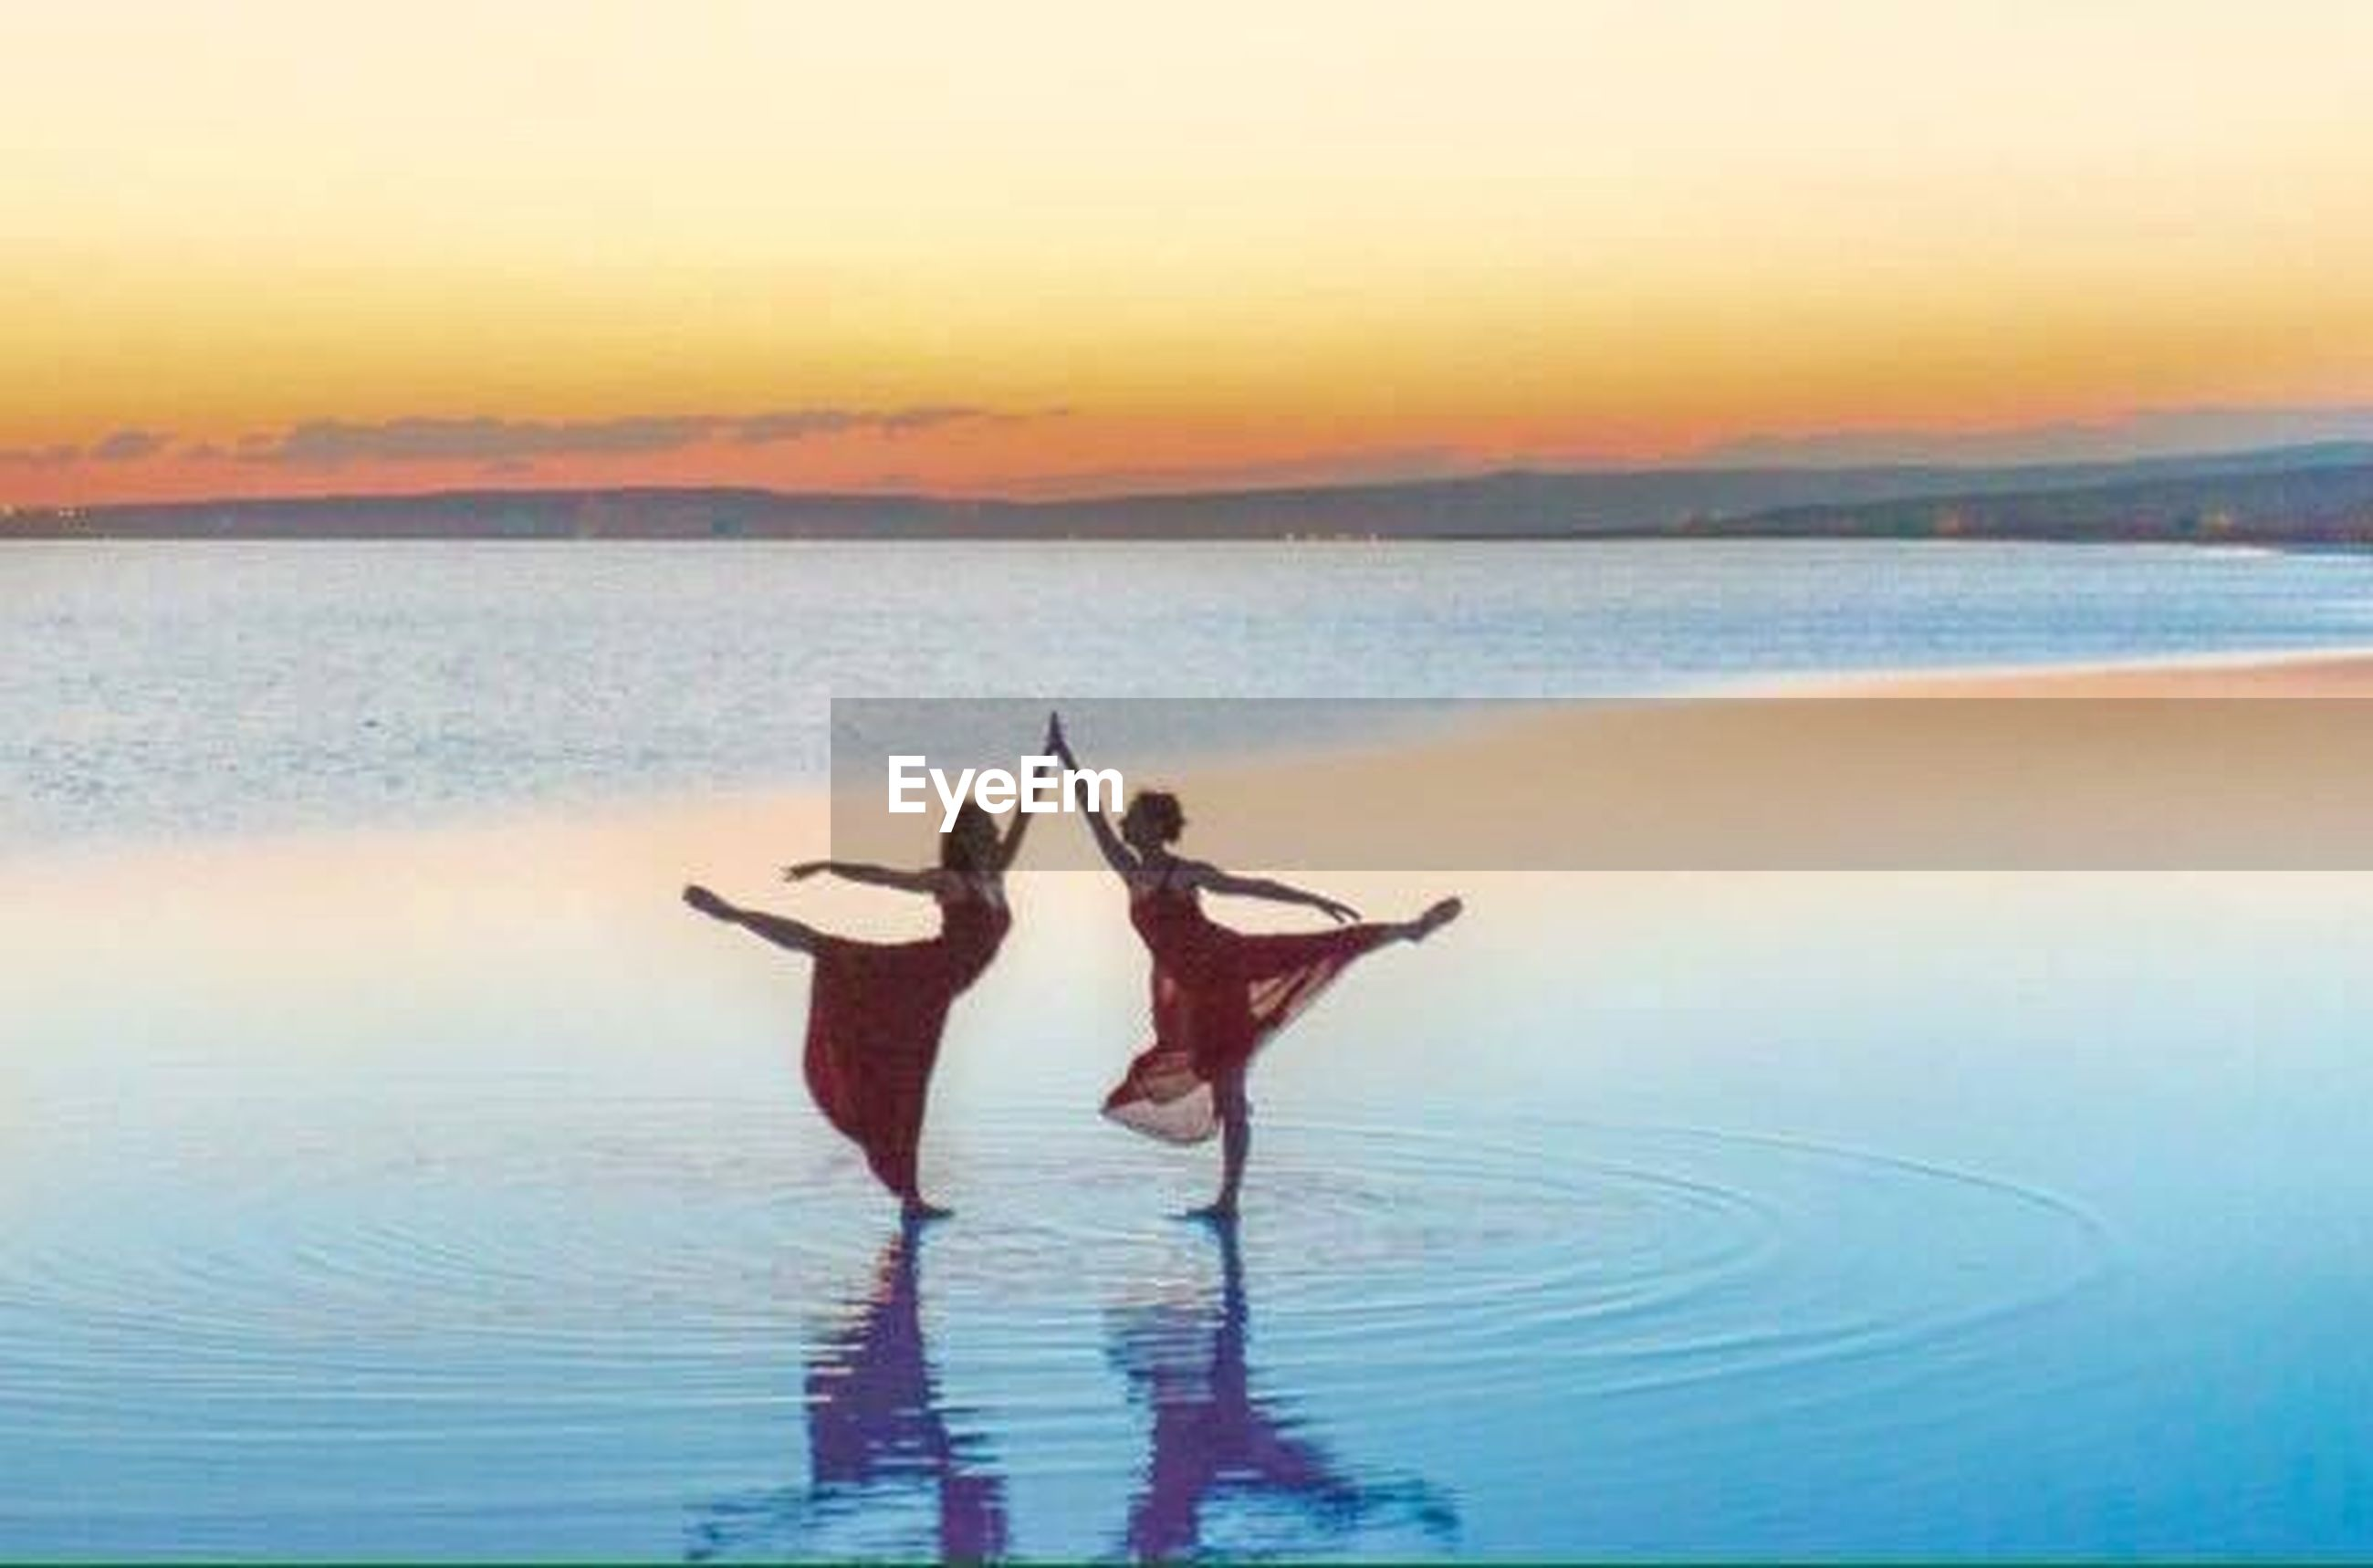 water, sky, sunset, sea, leisure activity, lifestyles, nature, two people, adult, beauty in nature, people, real people, togetherness, human body part, orange color, human arm, women, waterfront, tranquility, arms raised, swimming pool